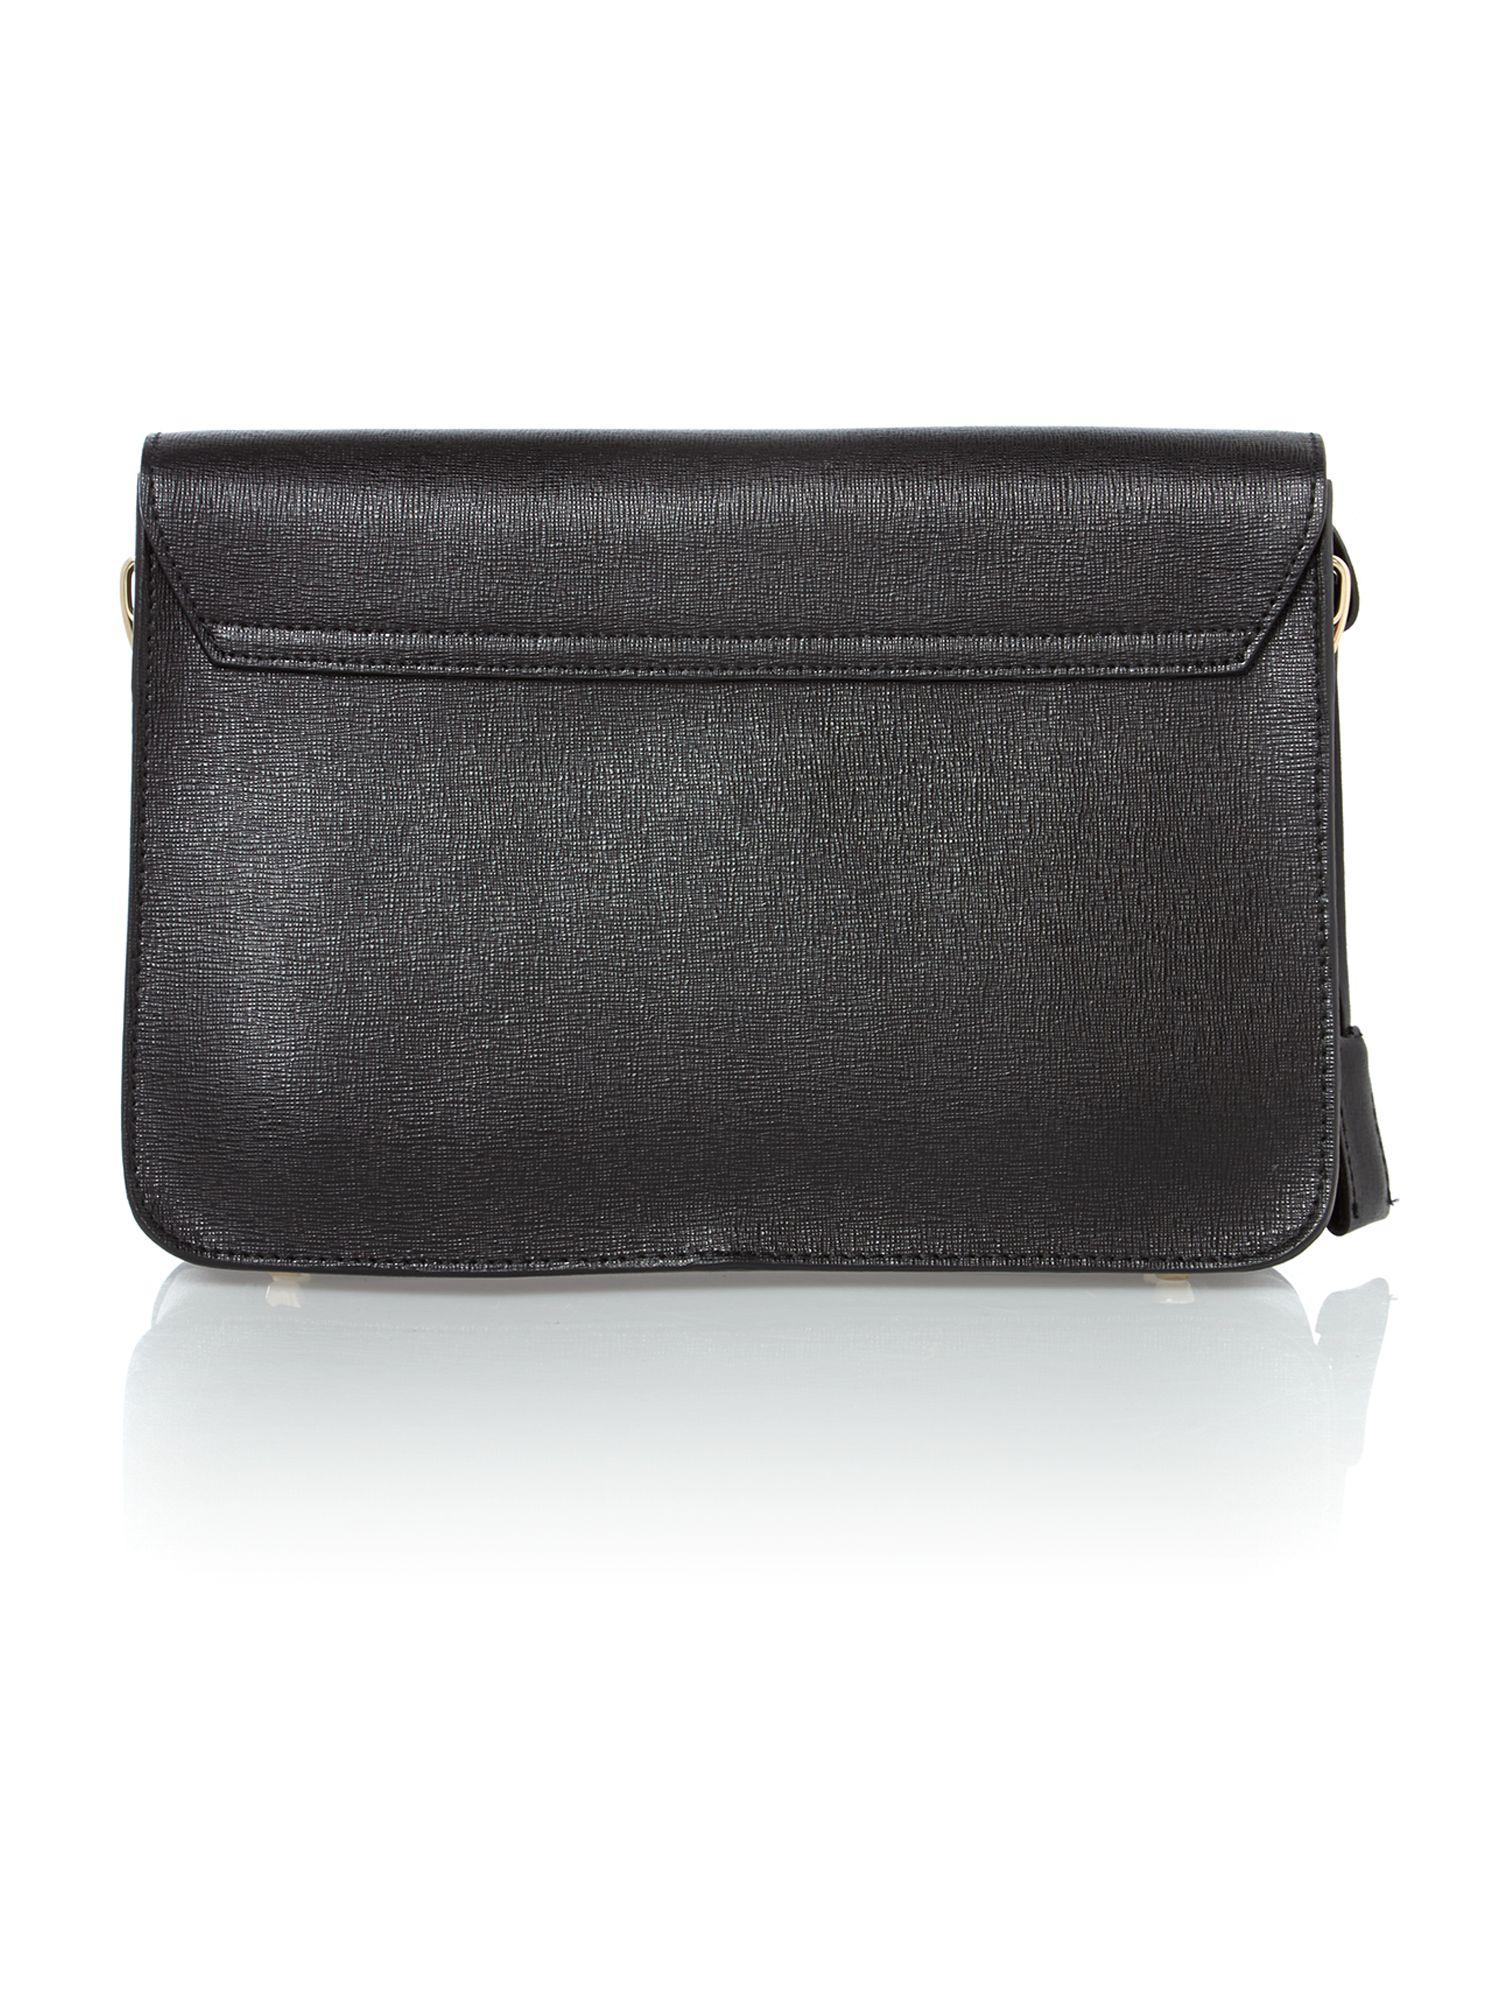 Metropolis black large shoulder bag